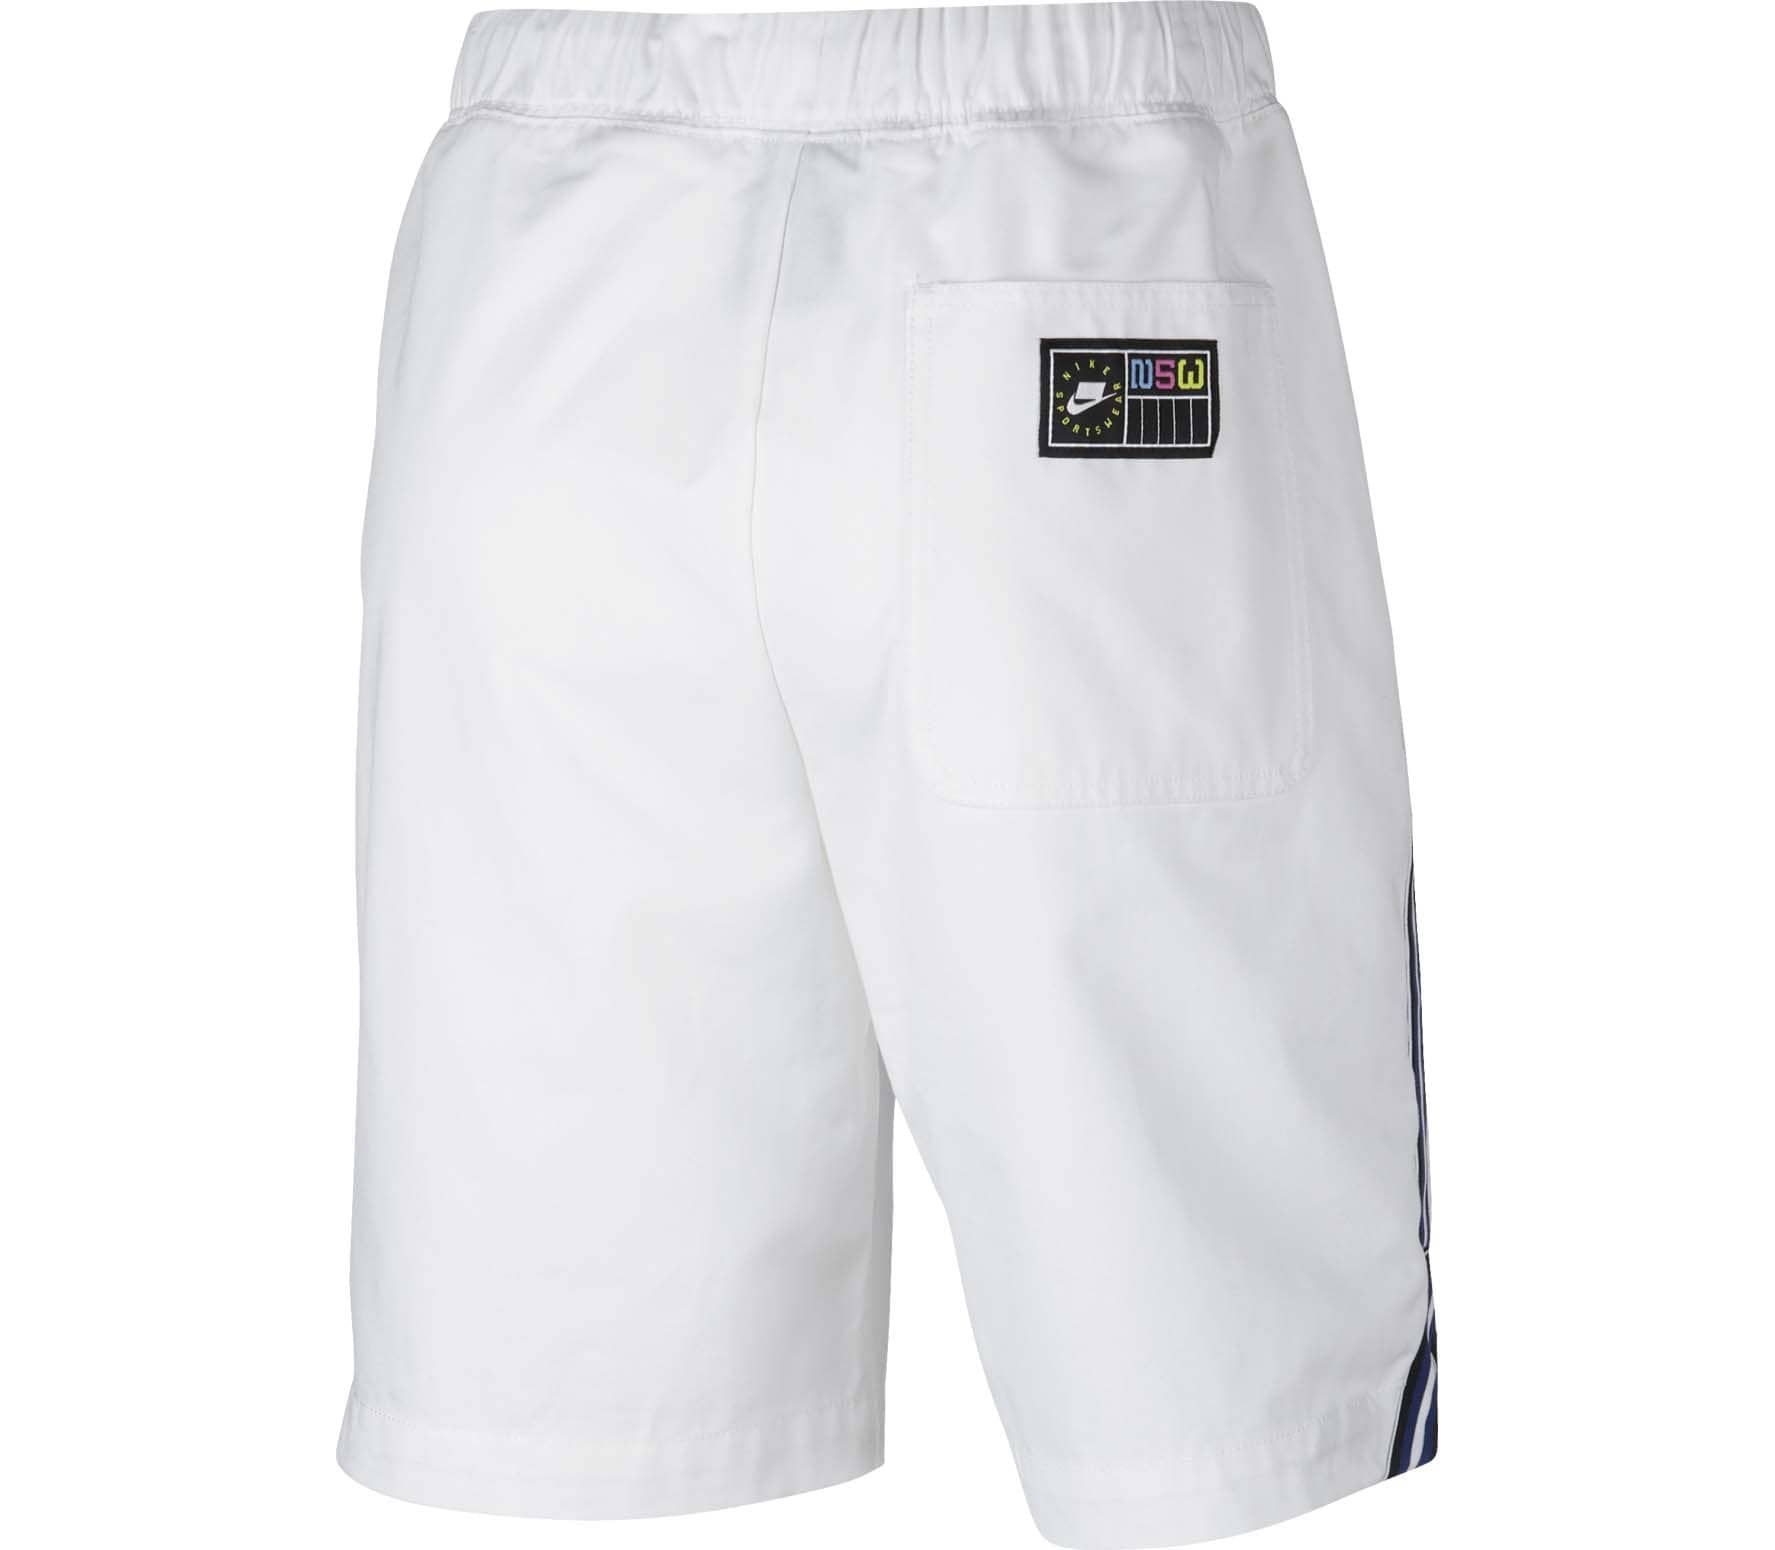 Nike Sportswear Canvas Damen Shorts weiß